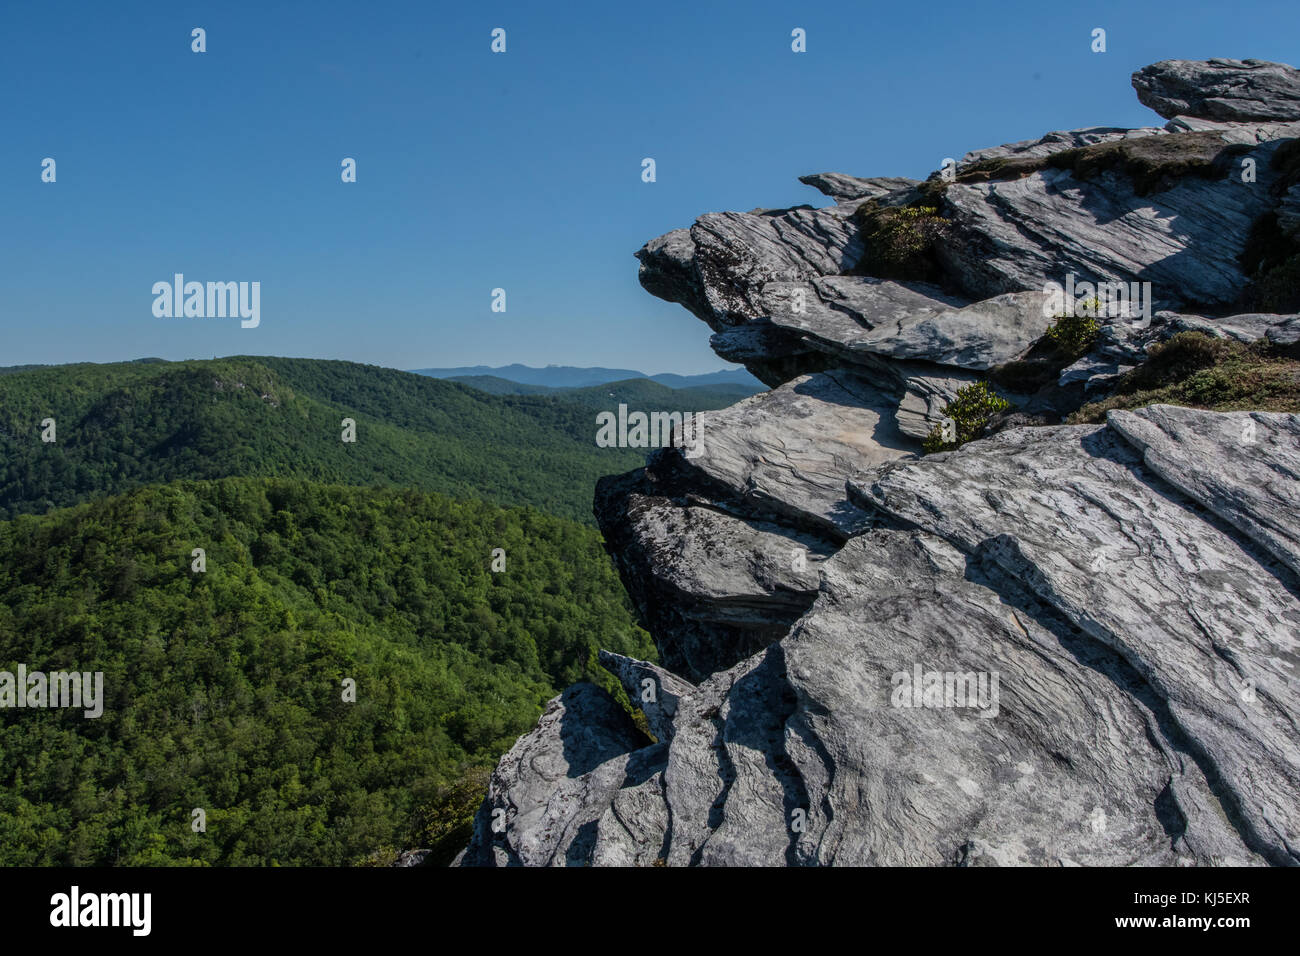 Rock Outcropping Above Blue Ridge Mountains in Linville Gorge - Stock Image